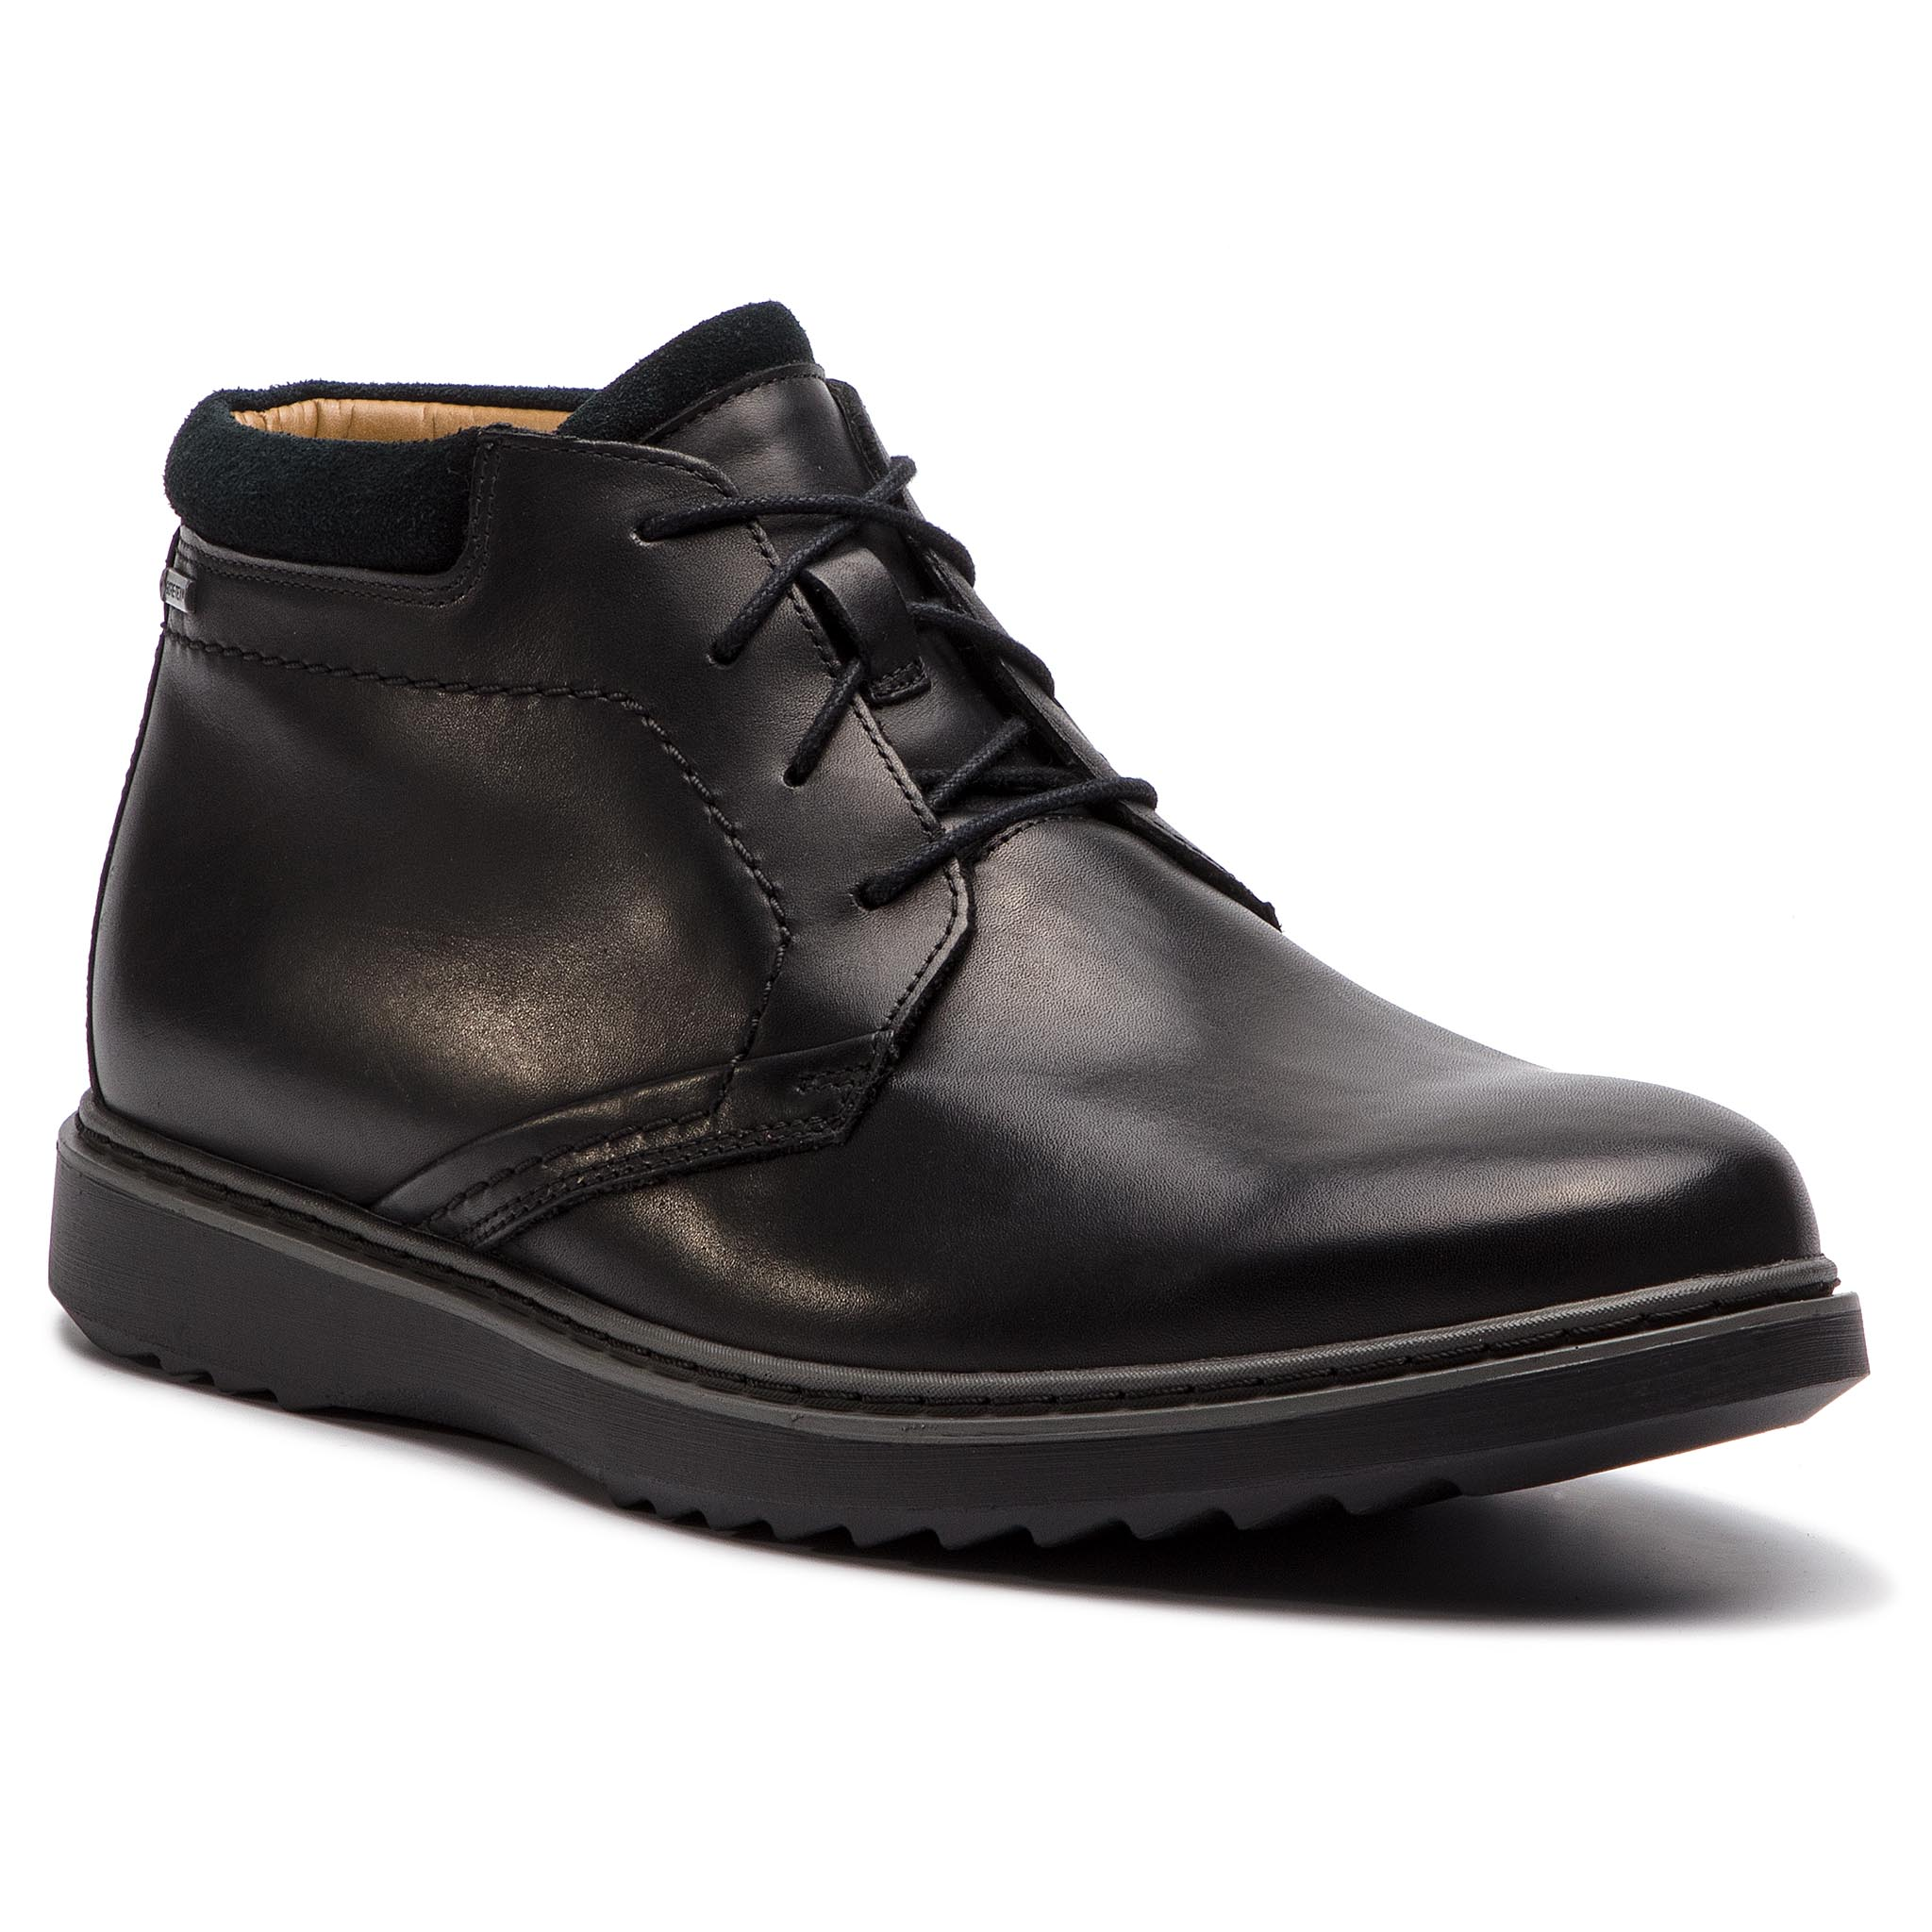 Ghete CLARKS - Un Geo Mid Gtx GORE-TEX 261368087 Black Leather